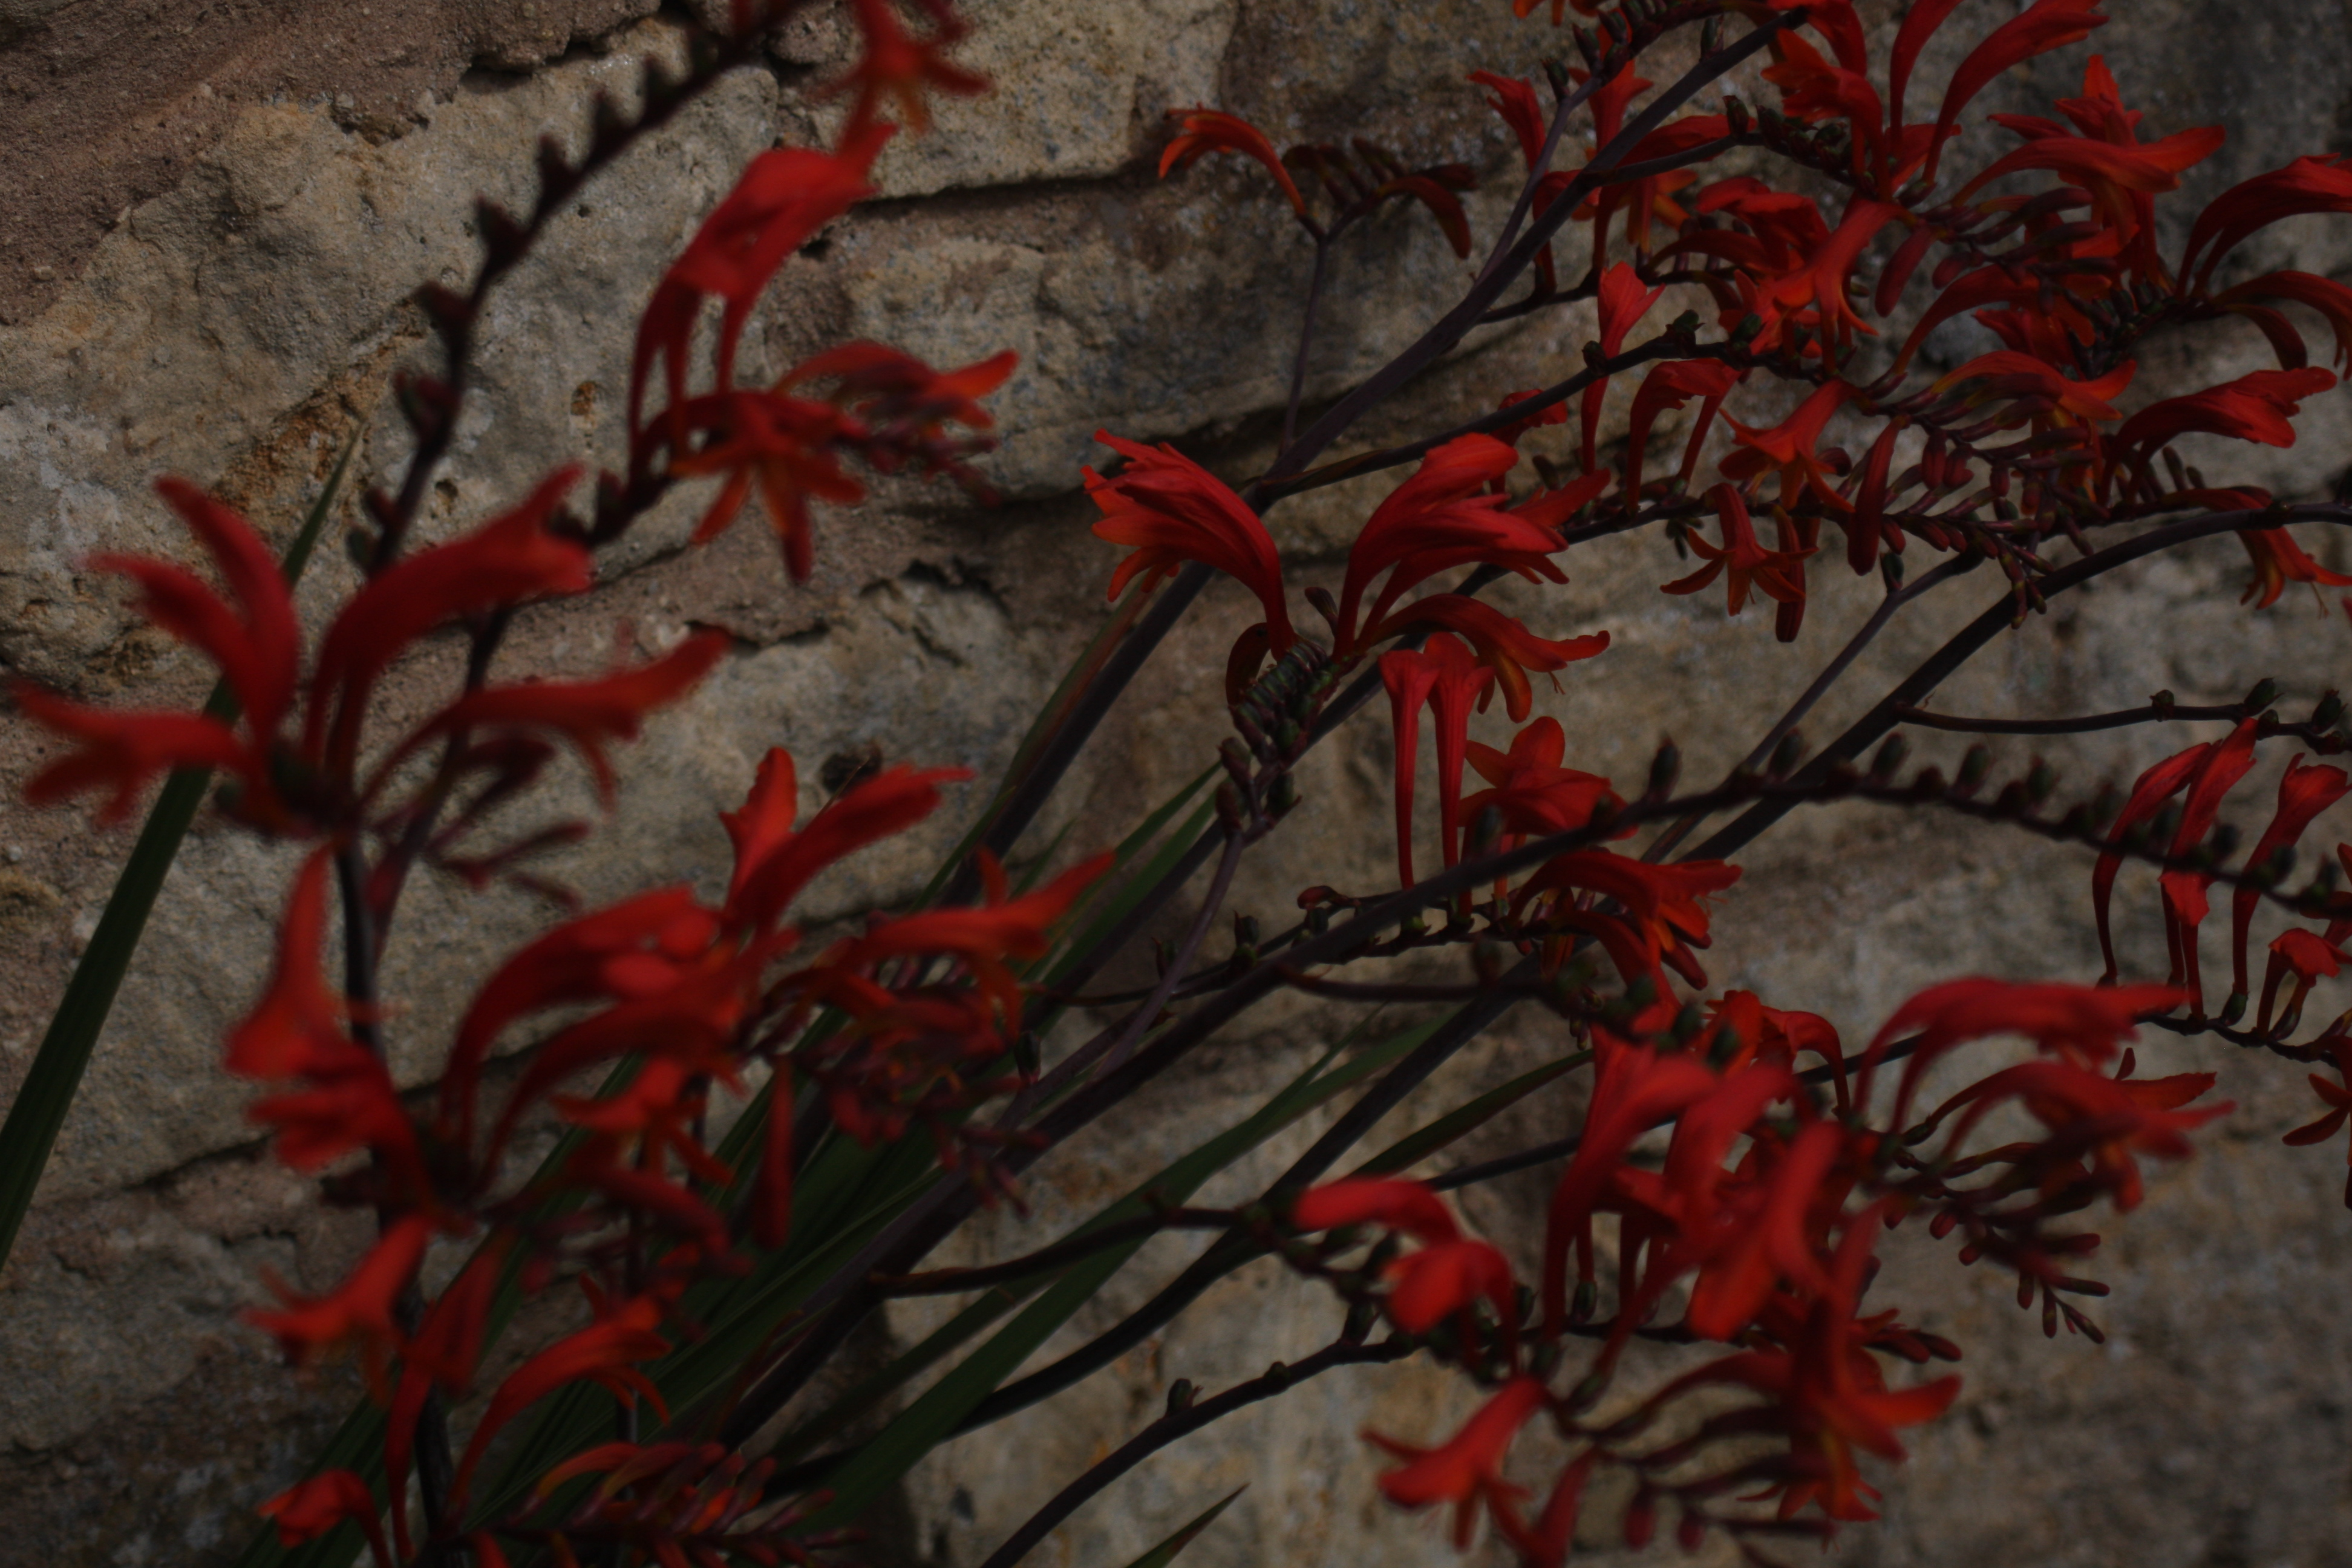 a photo of crimson red flowers in front of a stone wall